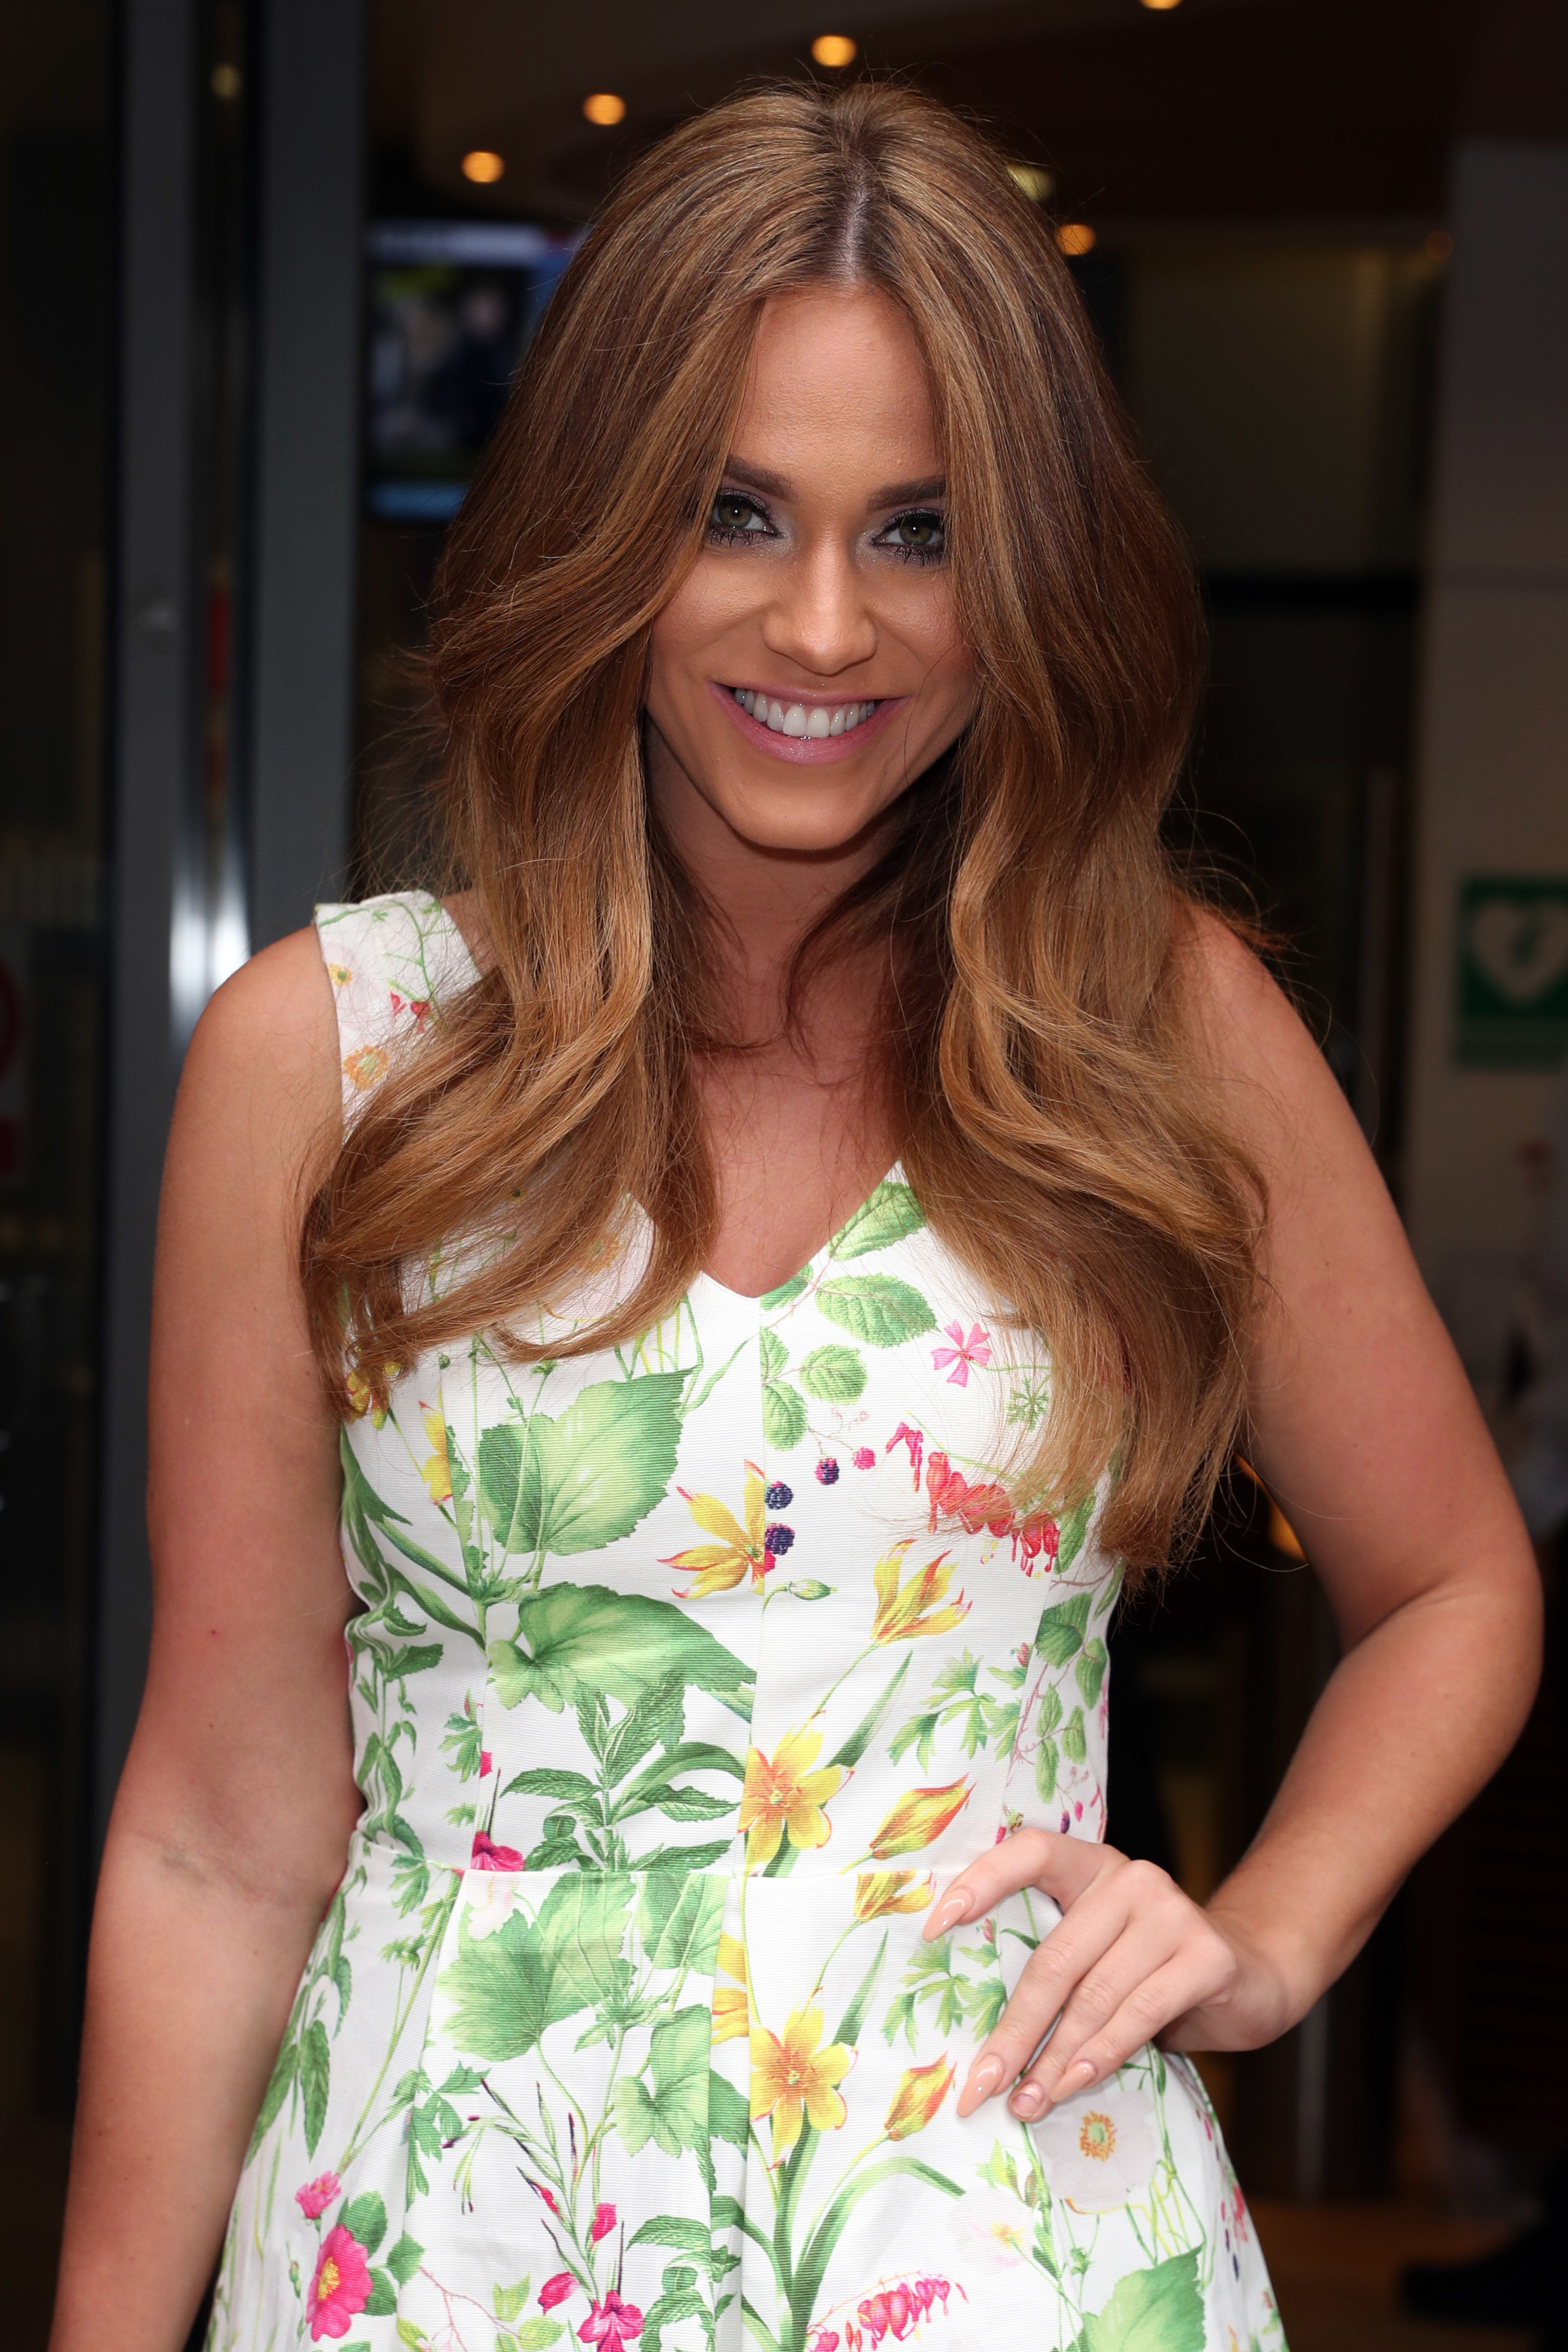 Vicky Pattison Has Her Say On So-Called 'Gurning'